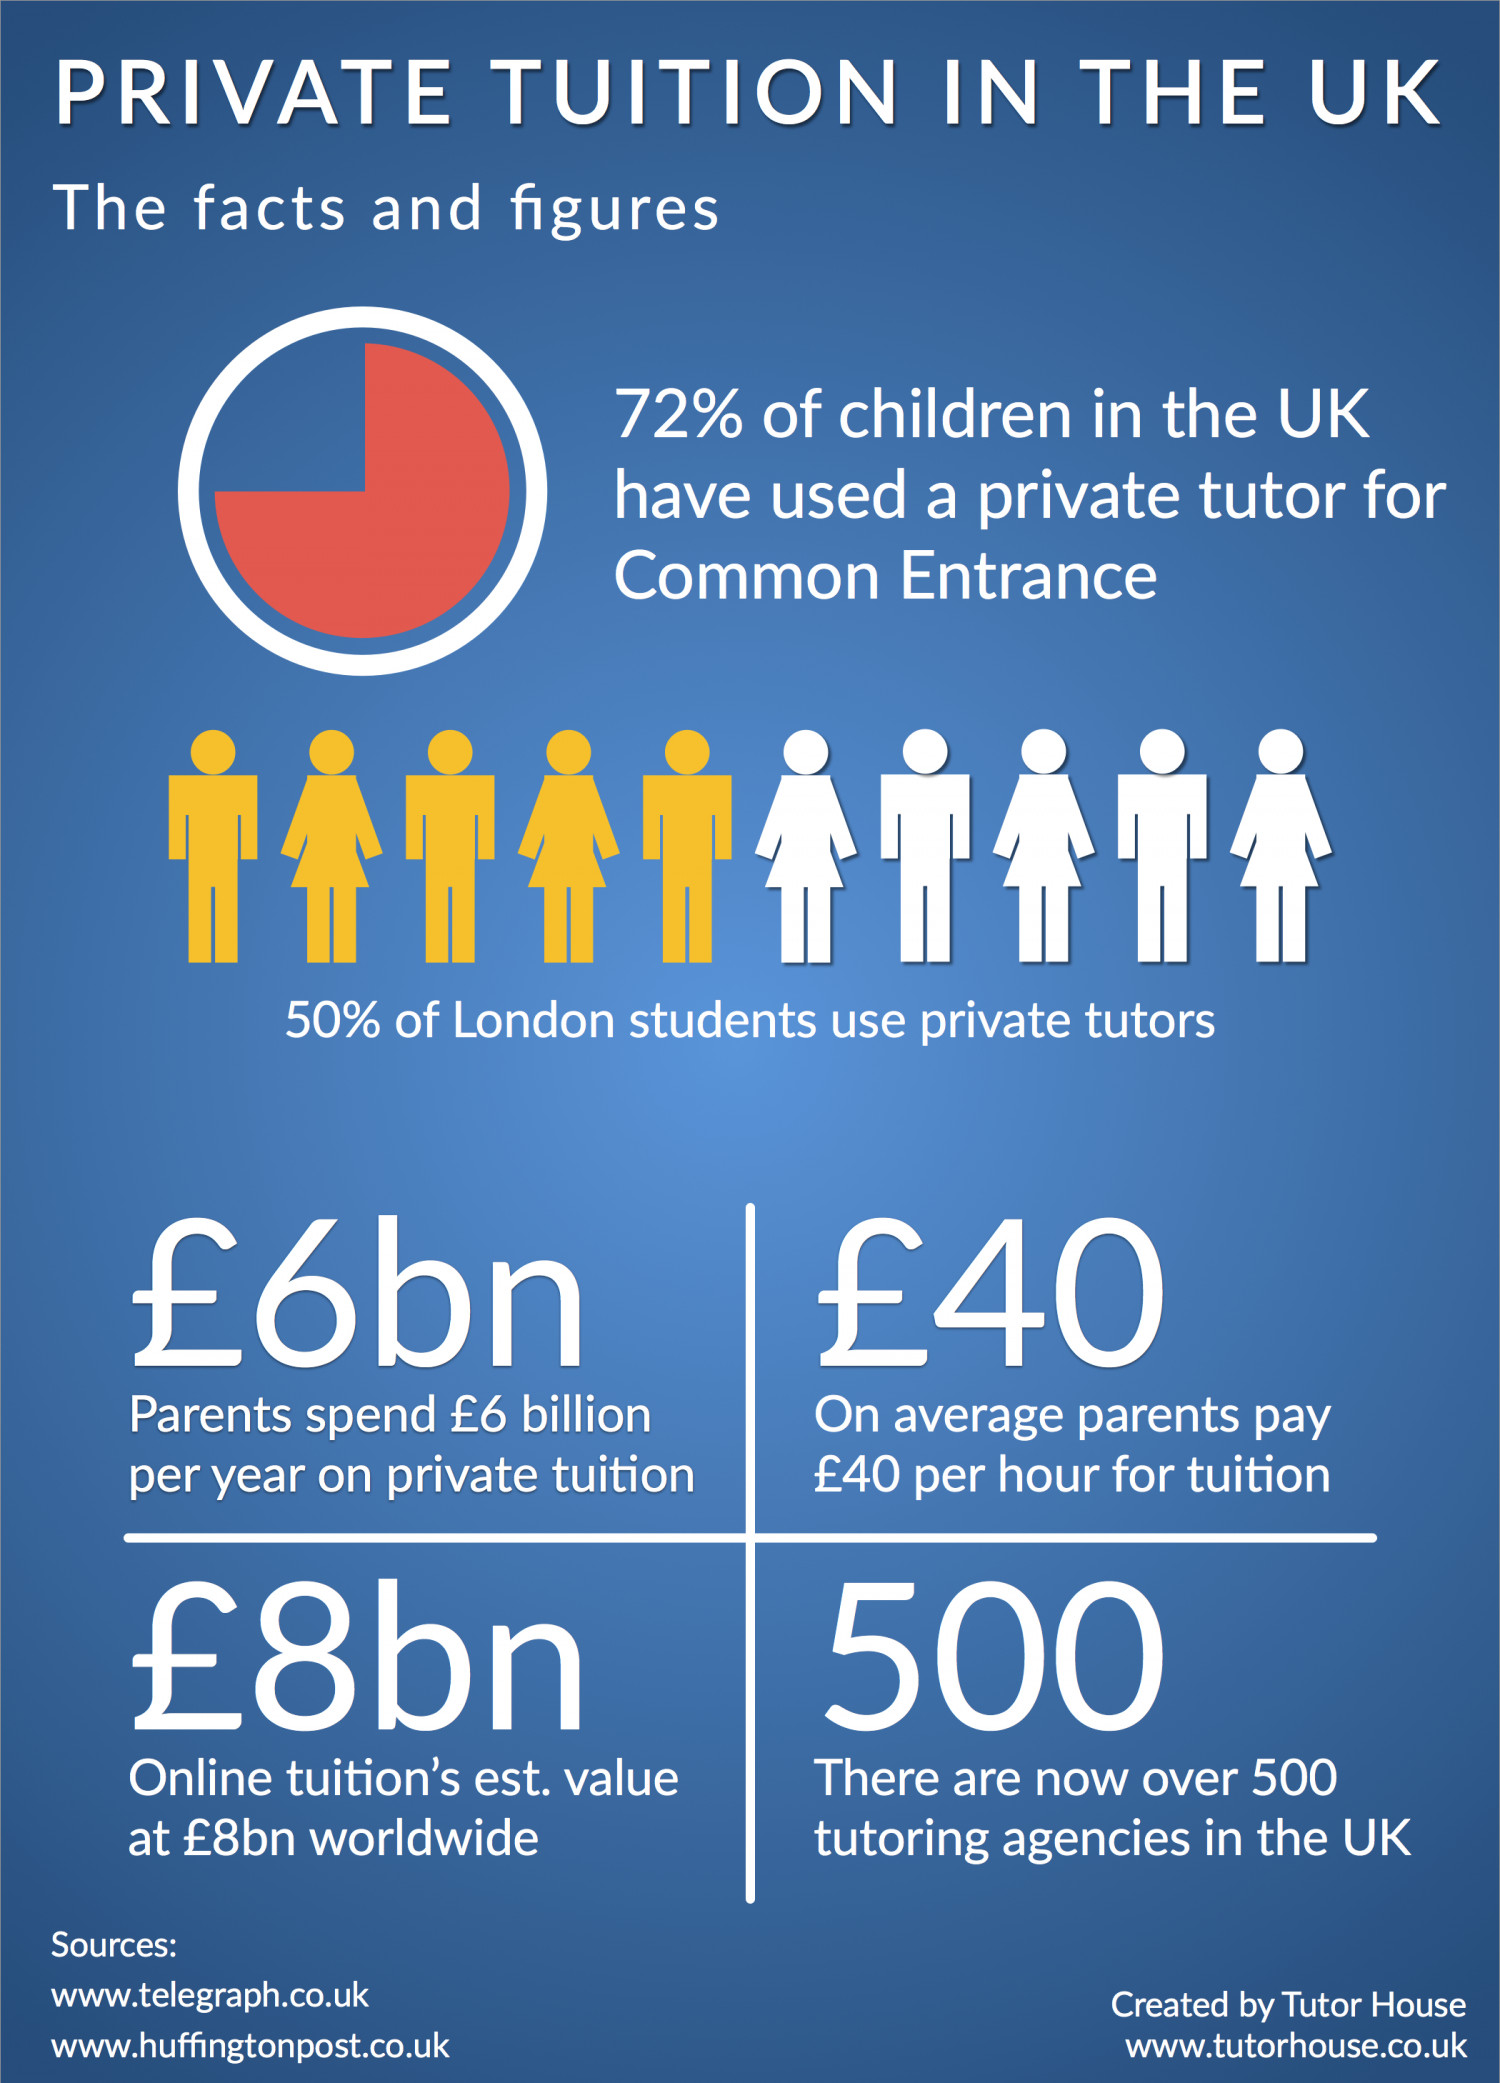 private-tuition-in-the-uk--the-facts--fi